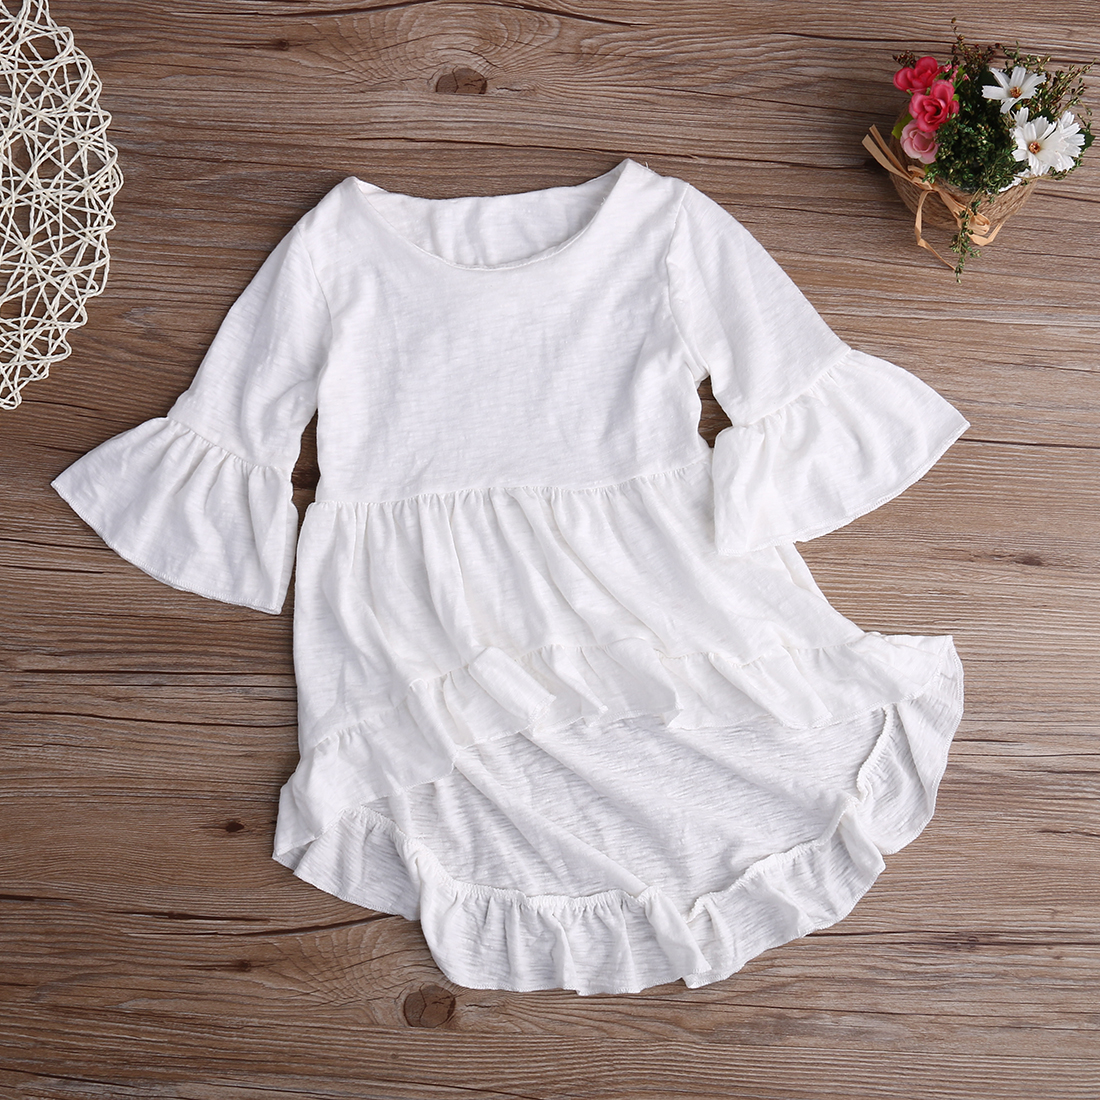 White Baby Girls Dress Frills Flare Sleeve Top T-Shirt Party Ruffles Hem Dresses 1-6Y trumpet sleeve knot hem crop top